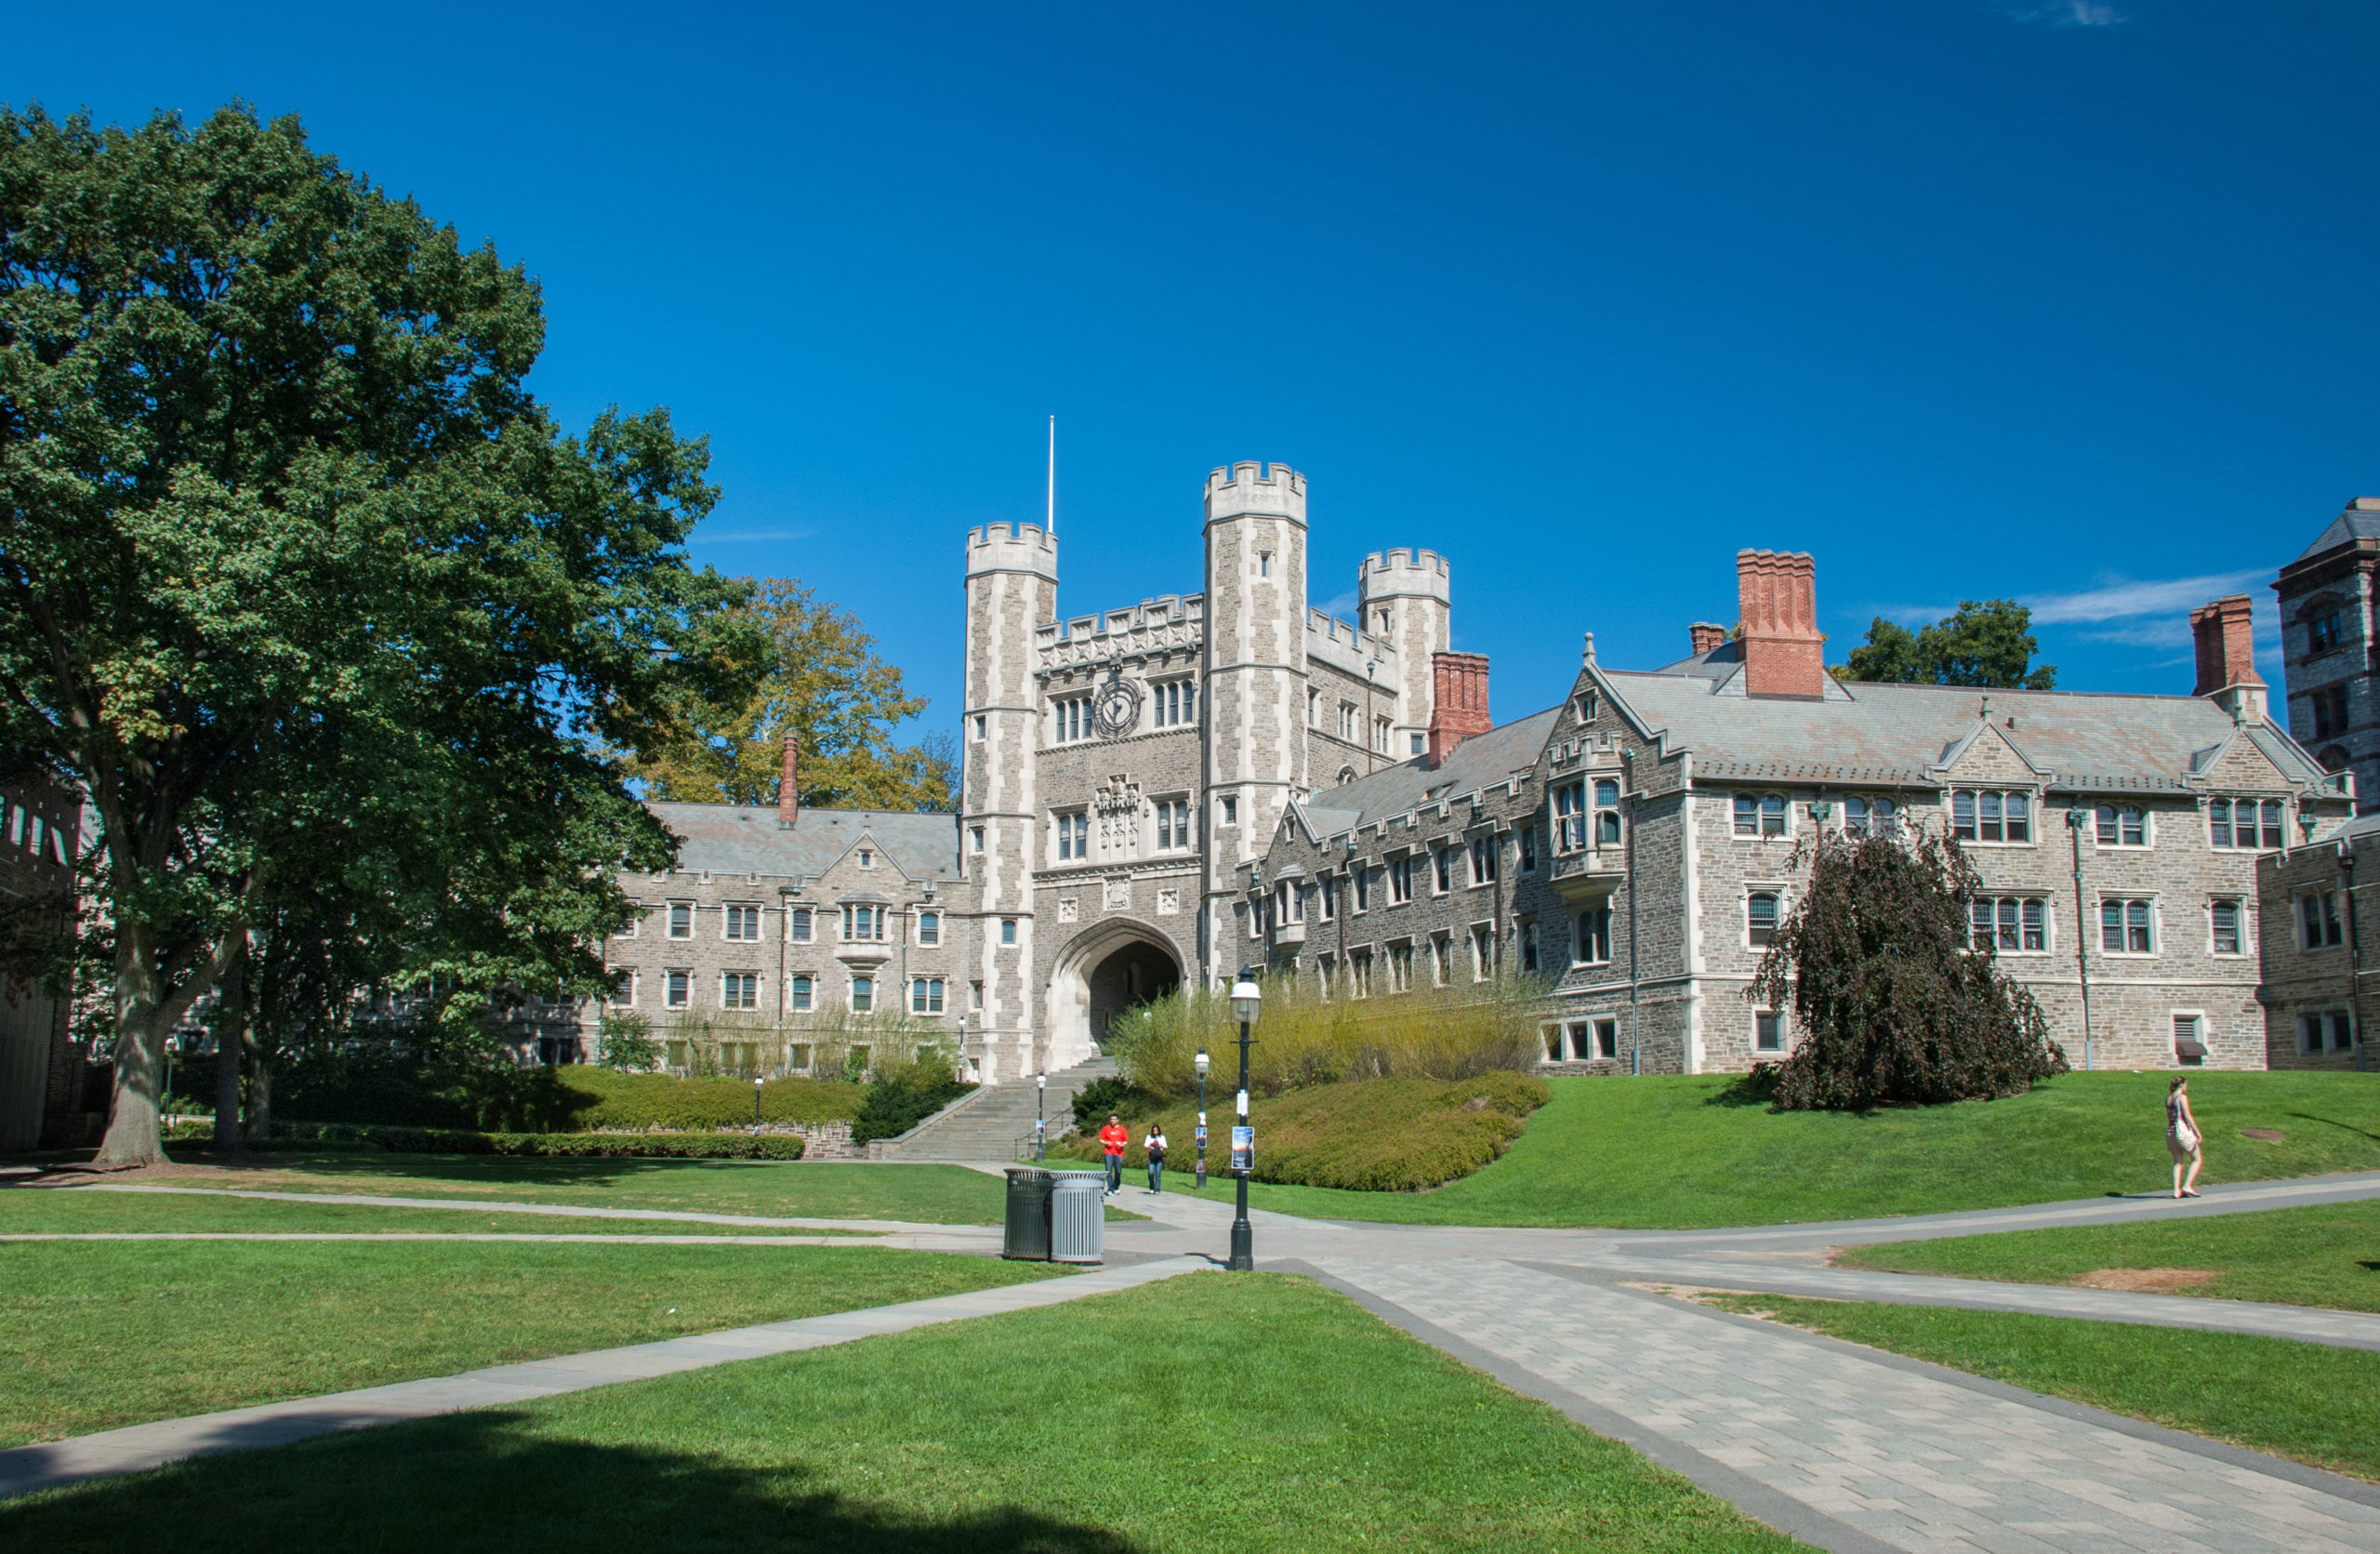 PRINCETON, NEW JERSEY, USA - SEPTEMBER 30, 2009: Princeton University is a private Ivy League research university in Princeton